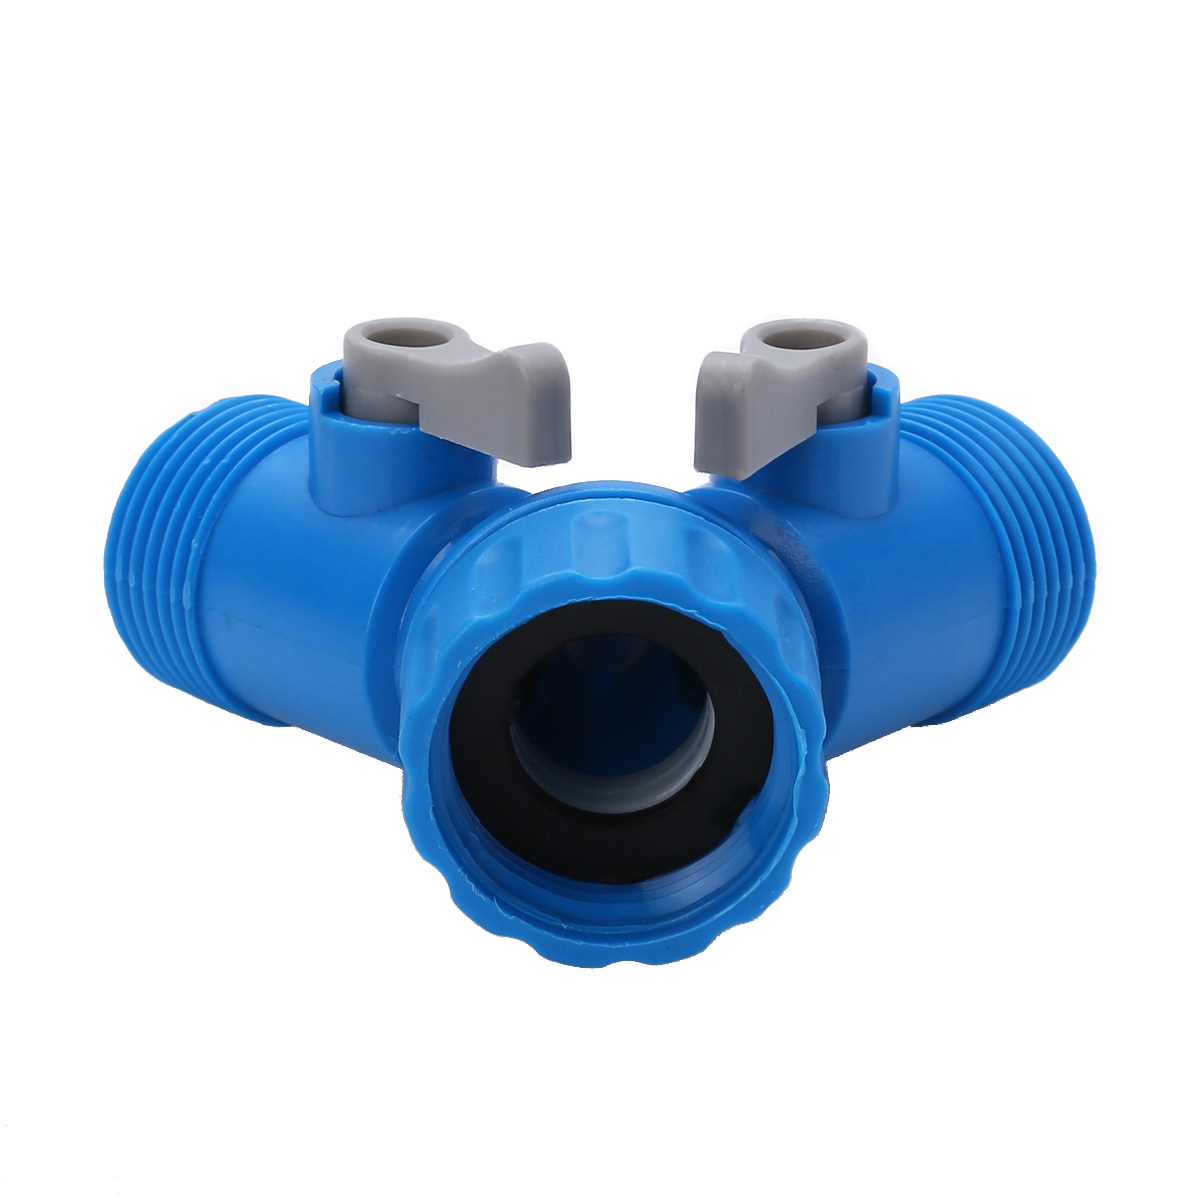 2 Way Garden Hose Splitter Tap Connector Y Adaptor Two Outlet Connection